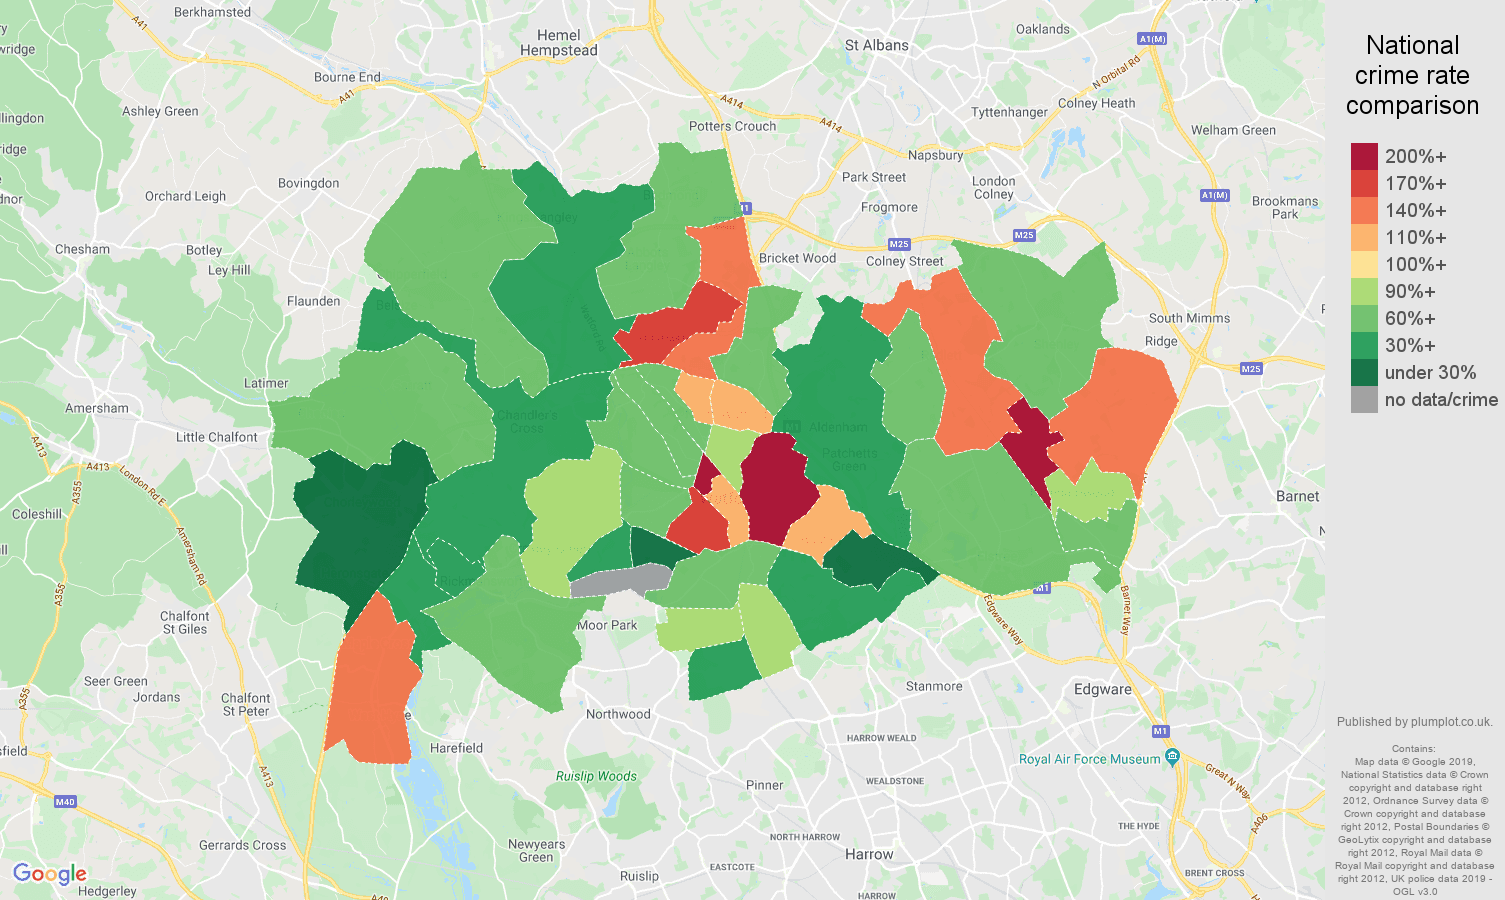 Watford other crime rate comparison map